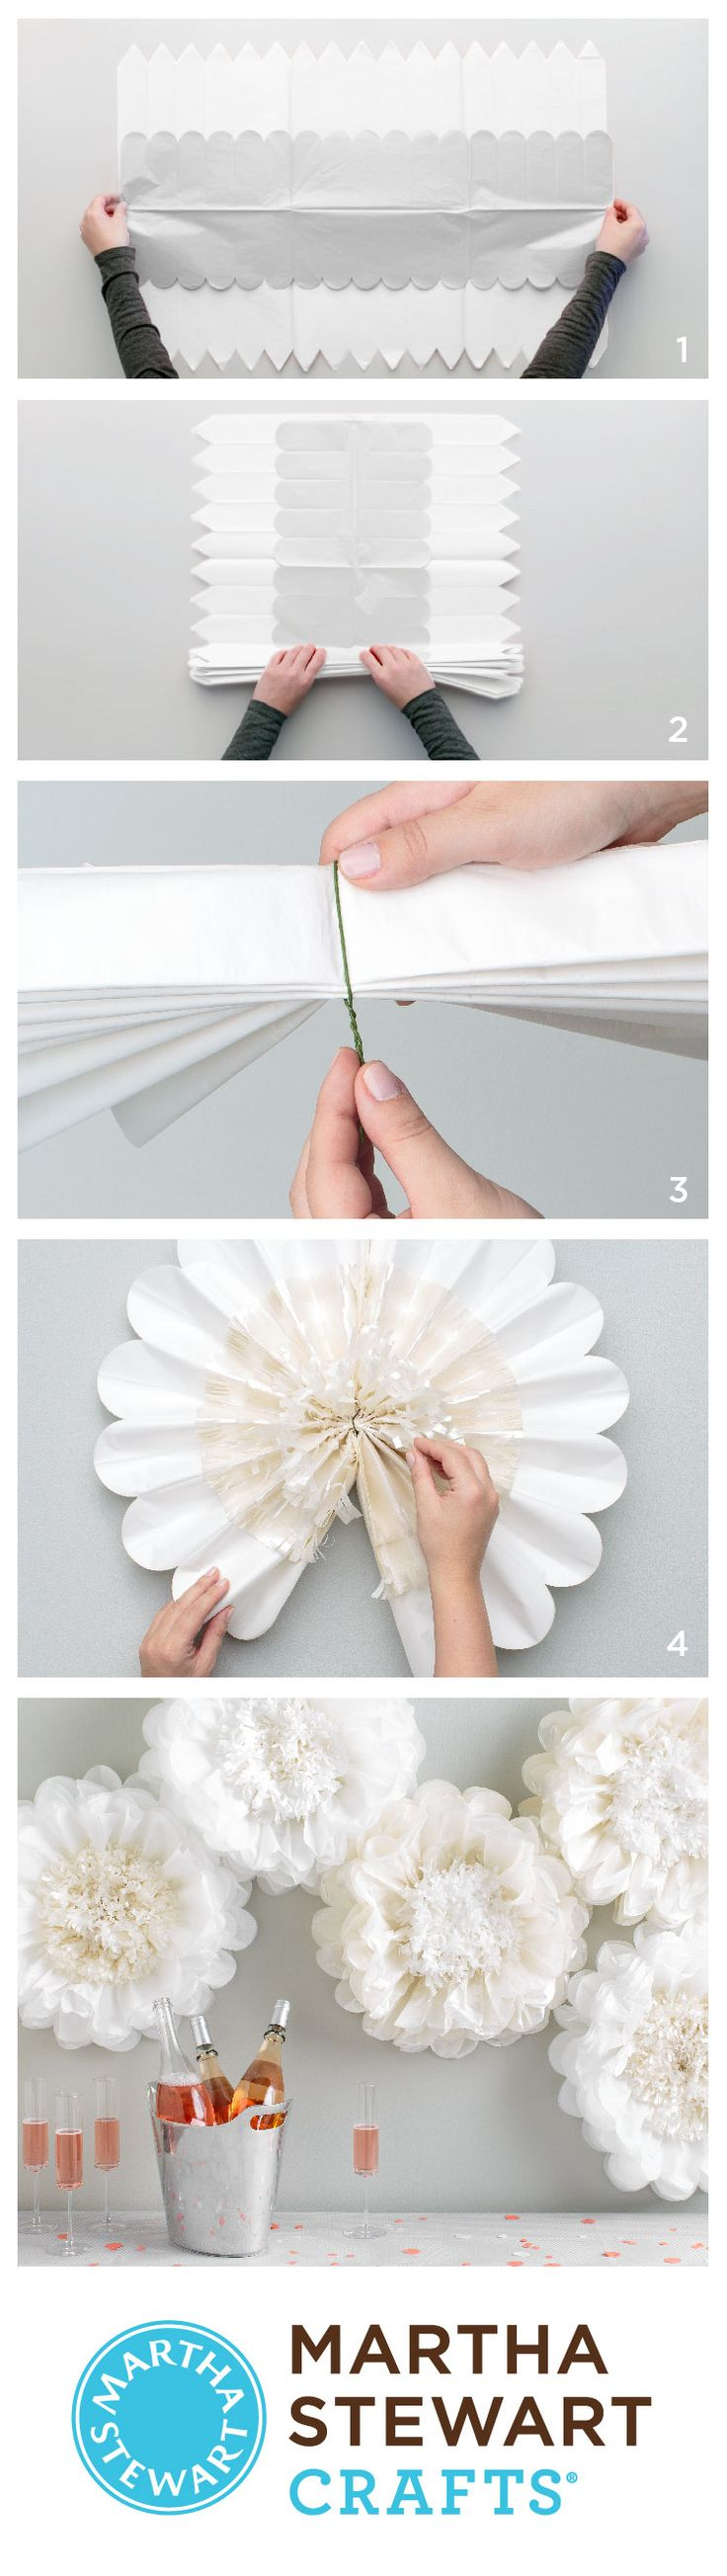 Best 25 tissue paper decorations ideas on pinterest tissue add captivating decorations to your walls and doors with the martha stewart crafts holiday lodge tissue paper flower kit the tissue paper has an alluring jeuxipadfo Gallery